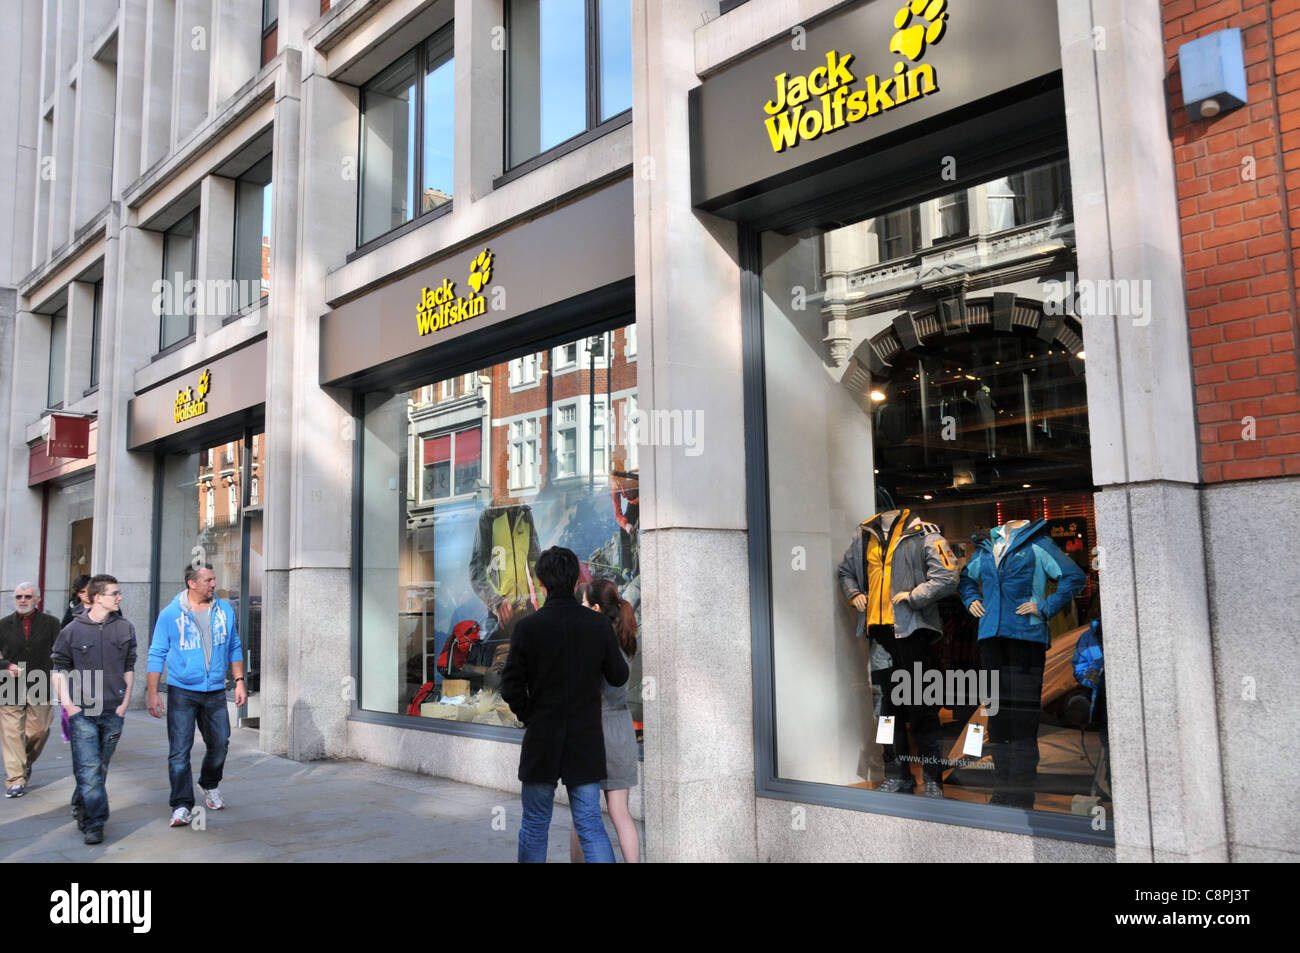 c877049cb73d25 Jack Wolfskin Store Shop-outdoor-Bekleidung Kleidung lange Acre Covent  Garden in London · Matthew Chattle   Alamy Stock Foto